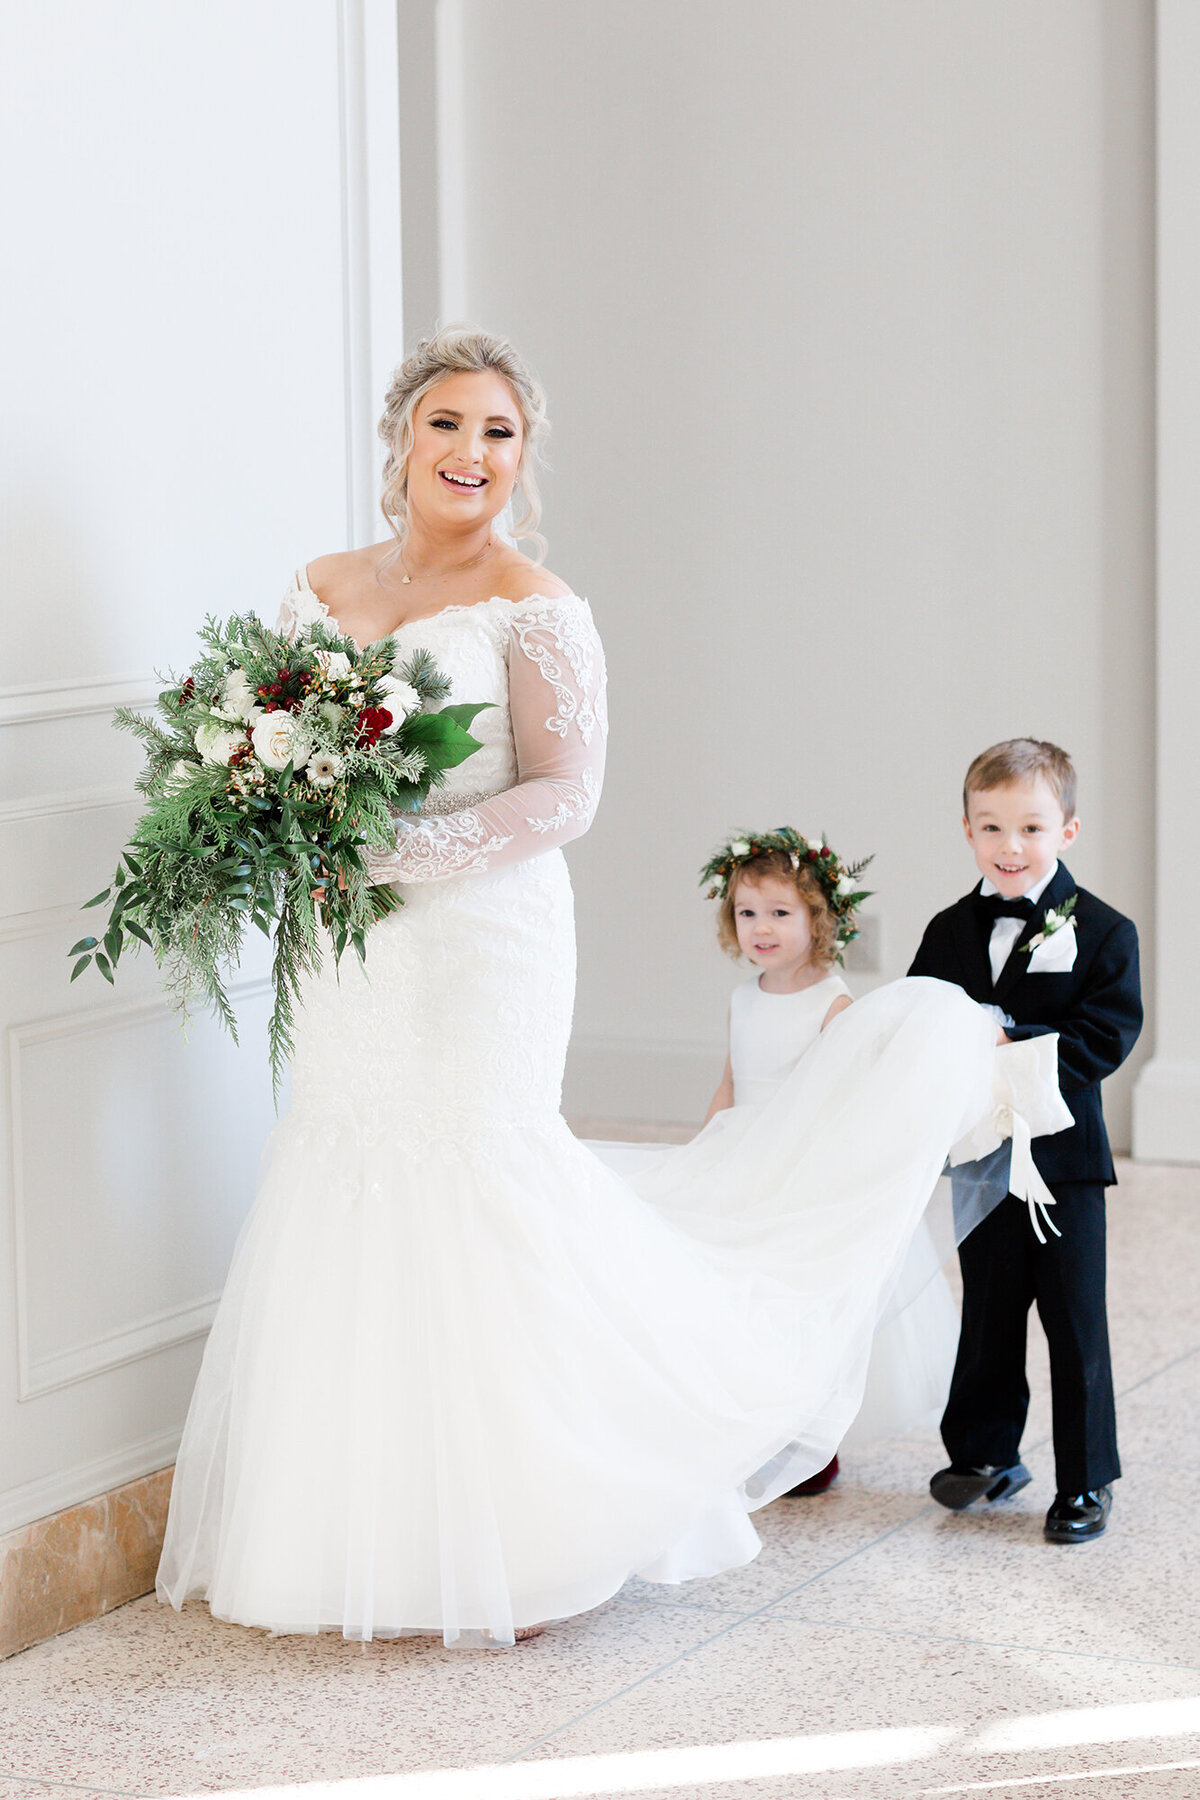 Terri-Lynn Warren Photography - Halifax Winter Wedding Photographer - Westin Nova Scotia Hotel-8321